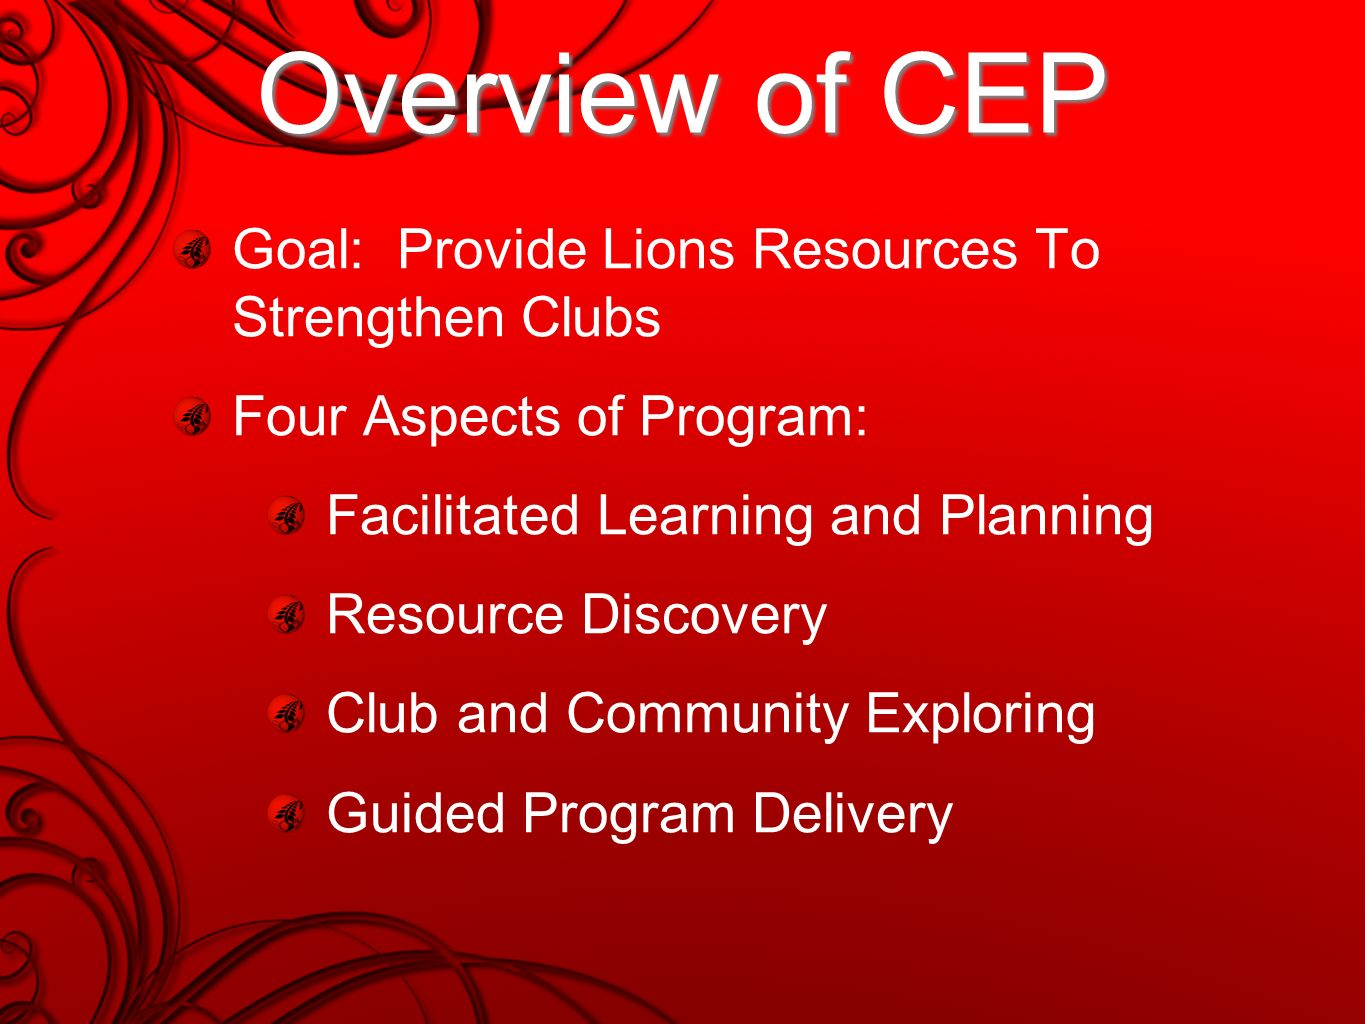 Overview of CEP Goal: Provide Lions Resources To Strengthen Clubs Four Aspects of Program: Facilitated Learning and Planning Resource Discovery Club and Community Exploring Guided Program Delivery